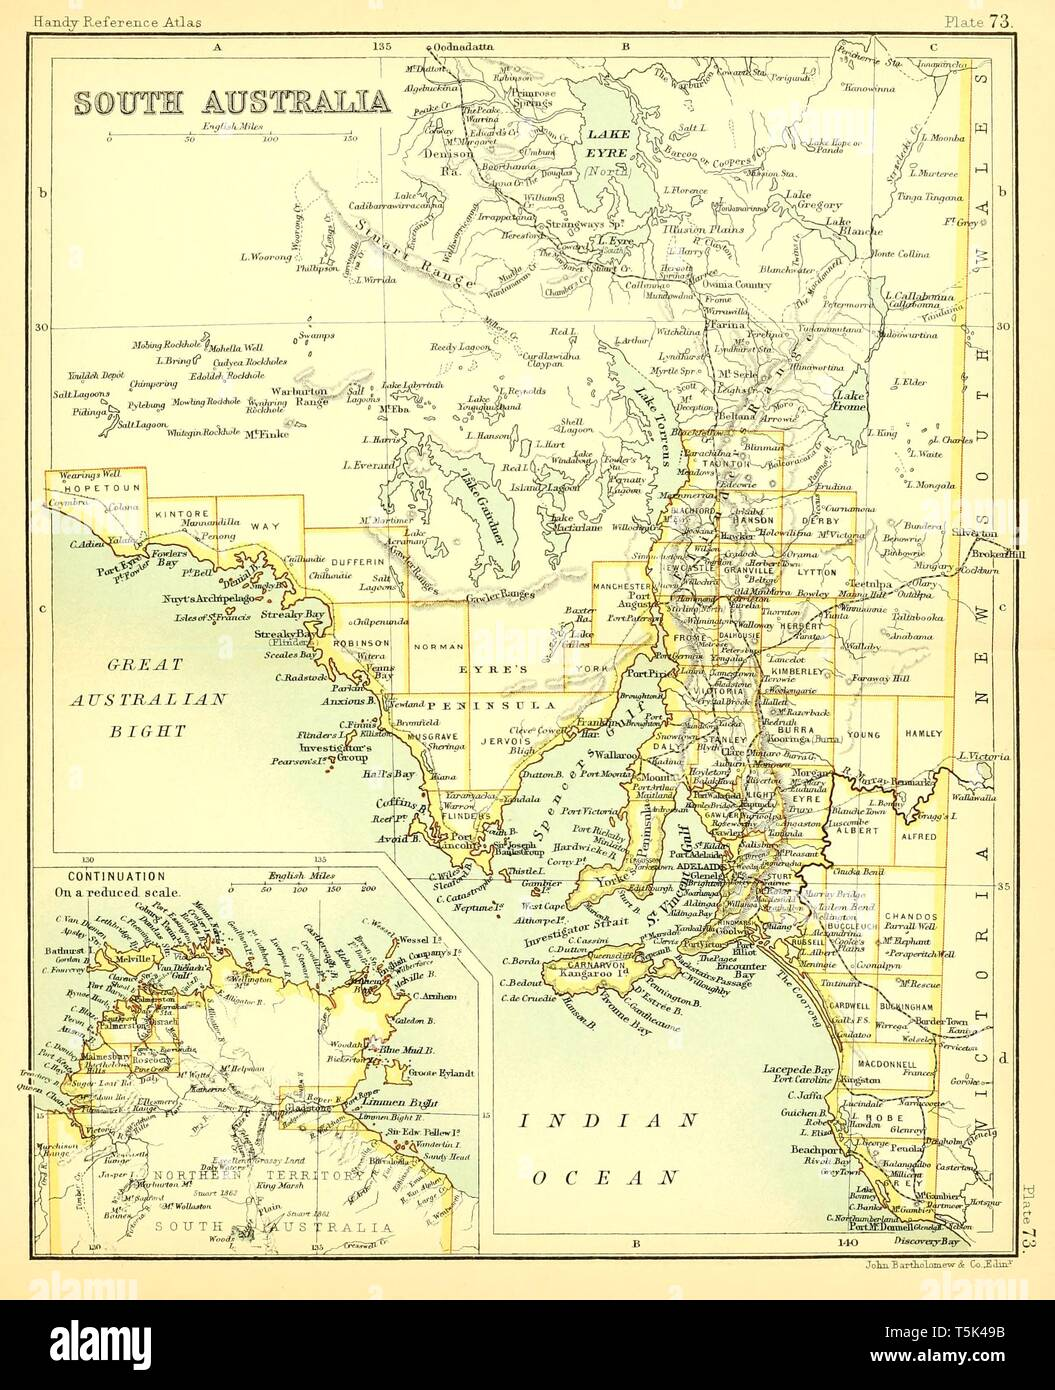 Beautiful vintage hand drawn map illustrations of South Australia from old book. Can be used as poster or decorative element for interior design. - Stock Image